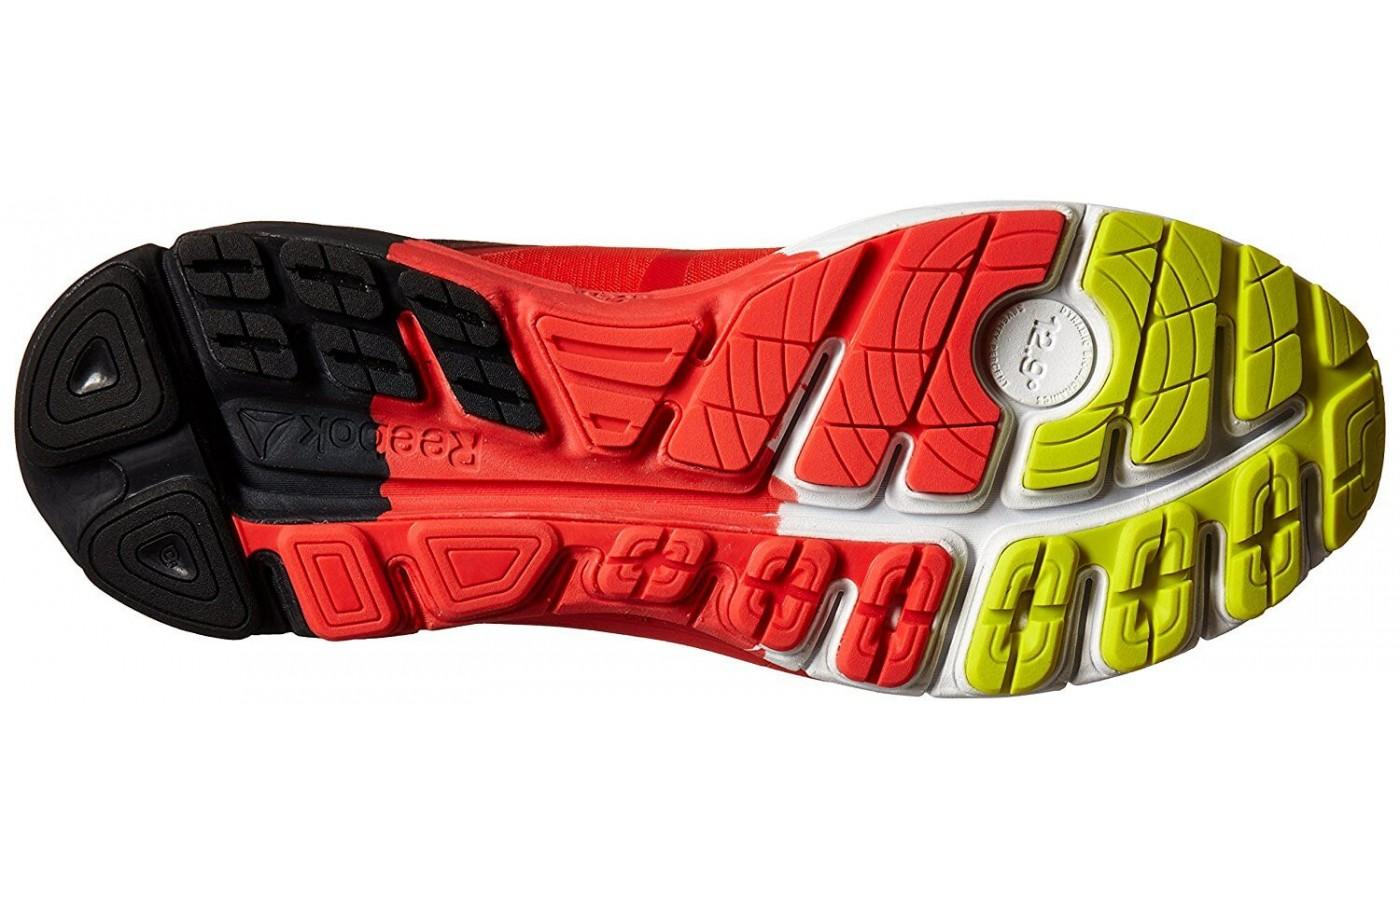 The durable outsole that produces quality traction